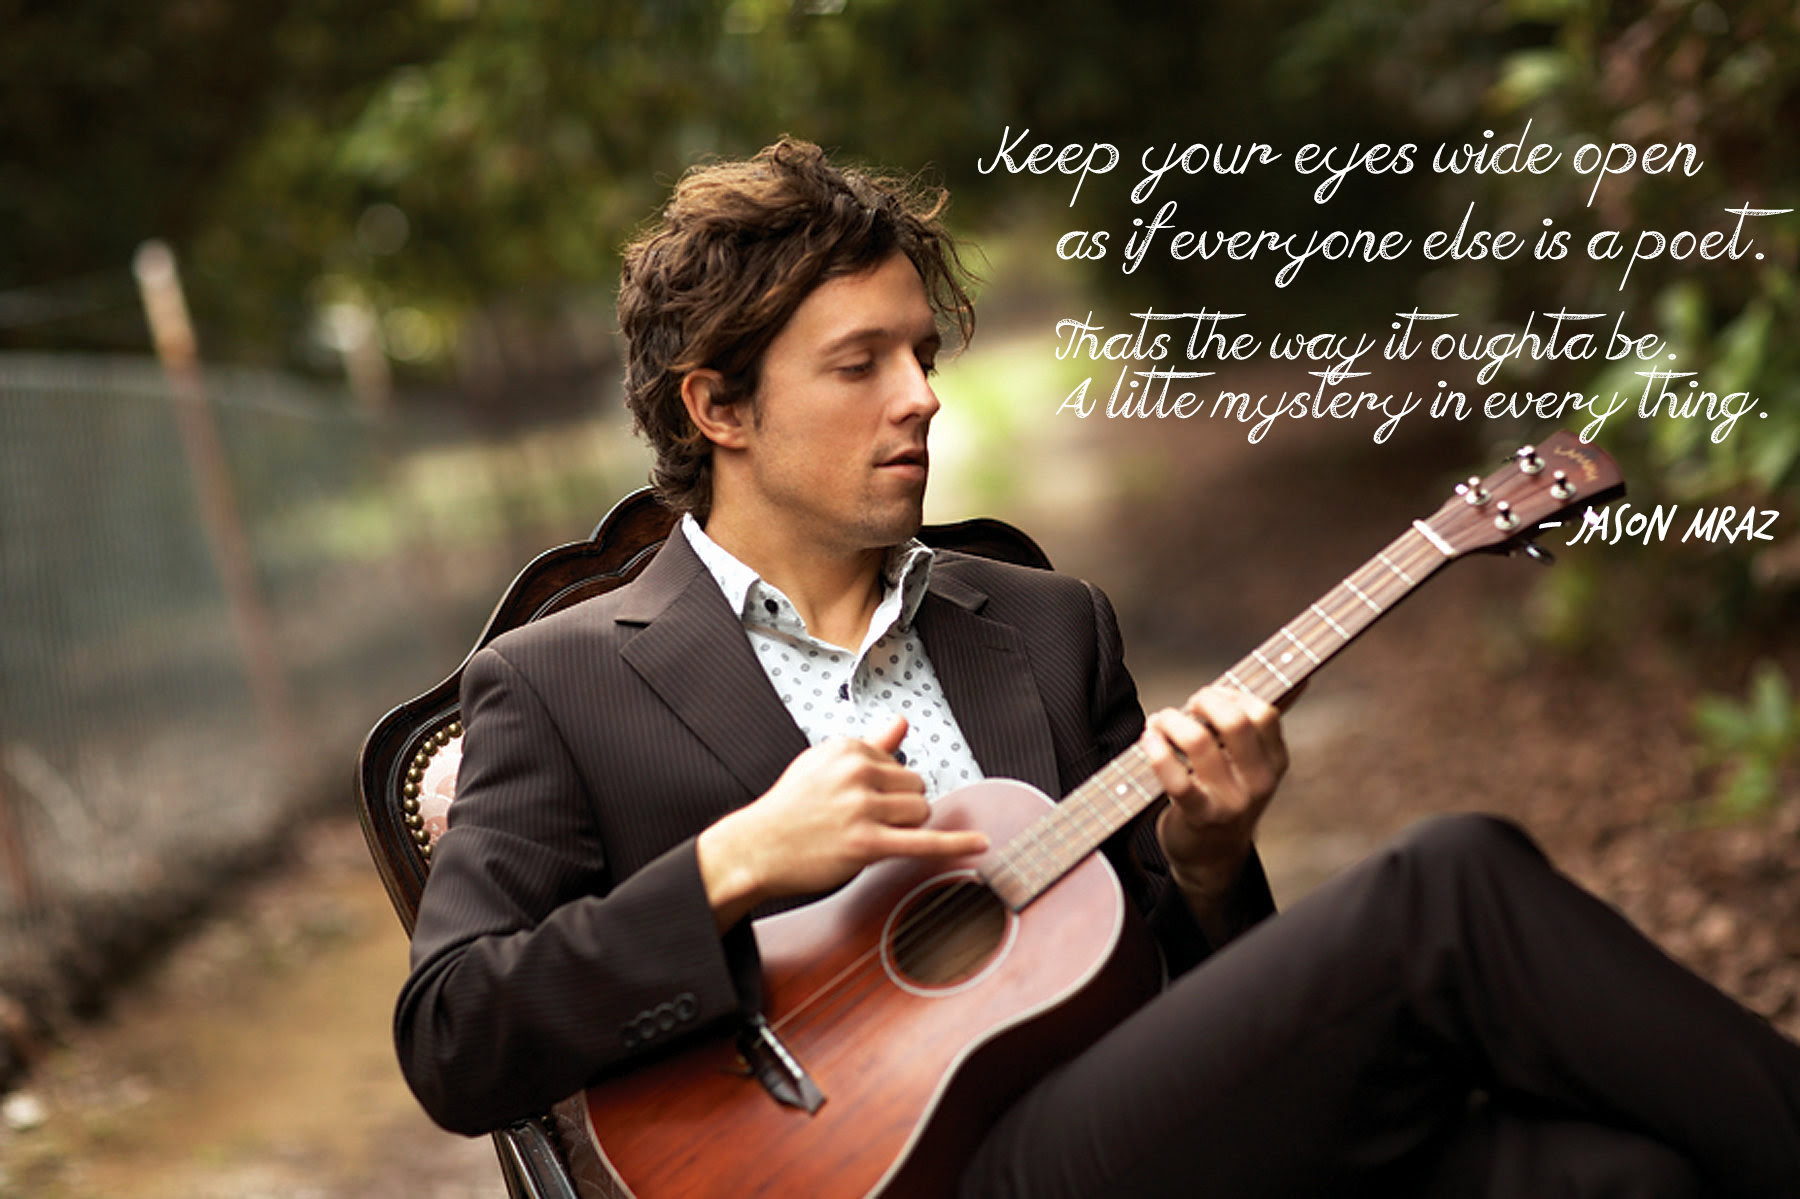 Keep Your Eyes Wide Open Jason Mraz 1800x1199 Quotesporn